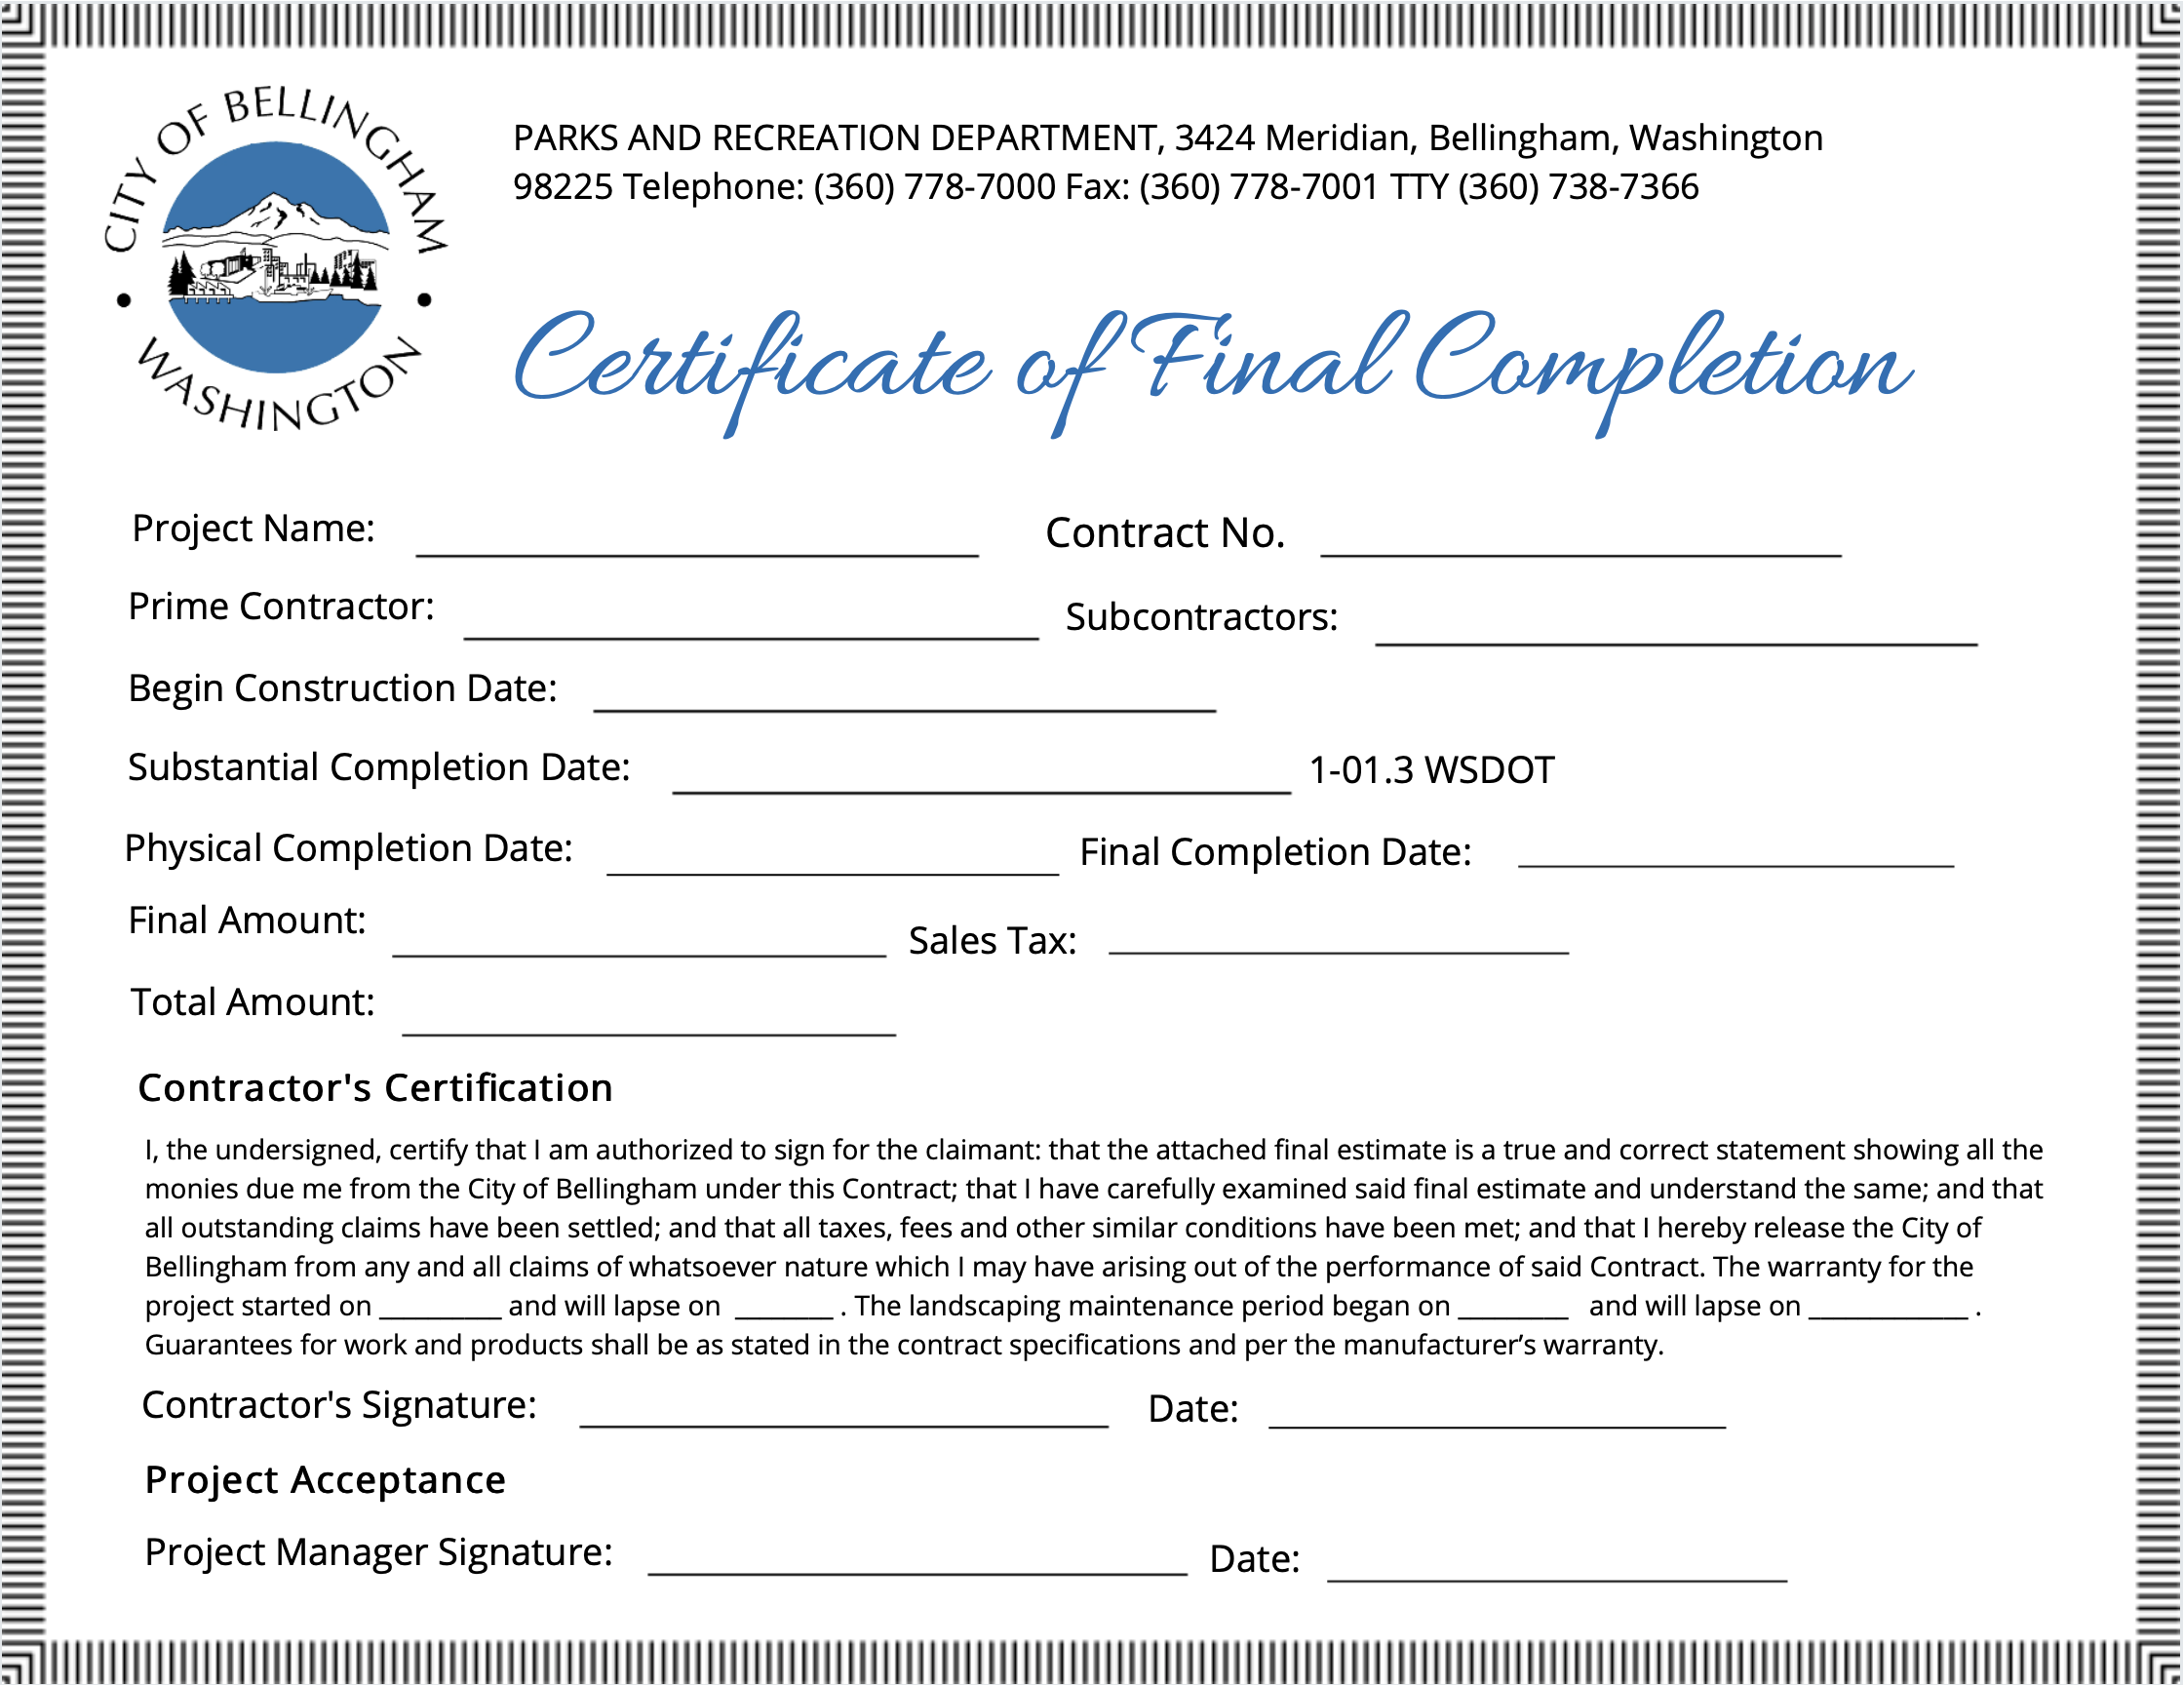 Certification of Final Completion.